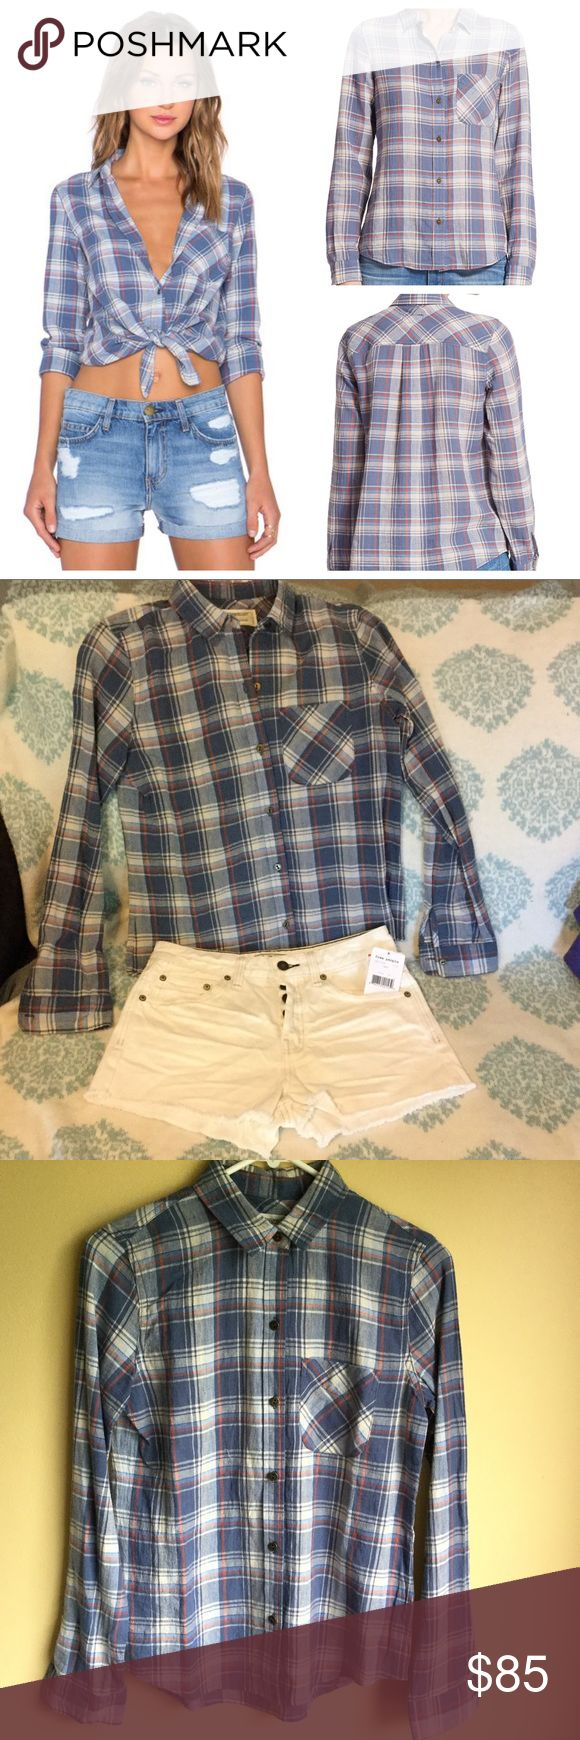 "NWT Current/Elliott slim boy 👚 paradise plaid sz0 NWT Current/Elliott ""The Slim Boy Shirt"" in paradise plaid. Size 0. Wear it buttoned, unbuttoned, tied...with jeans or shorts (theFree People shorts shown here are listed separately).There is a tiny pinhole just below the inside collar (see photo). It is pretty much under the collar from the outside, but I took a photo pointing it out. Current/Elliott Tops Button Down Shirts"